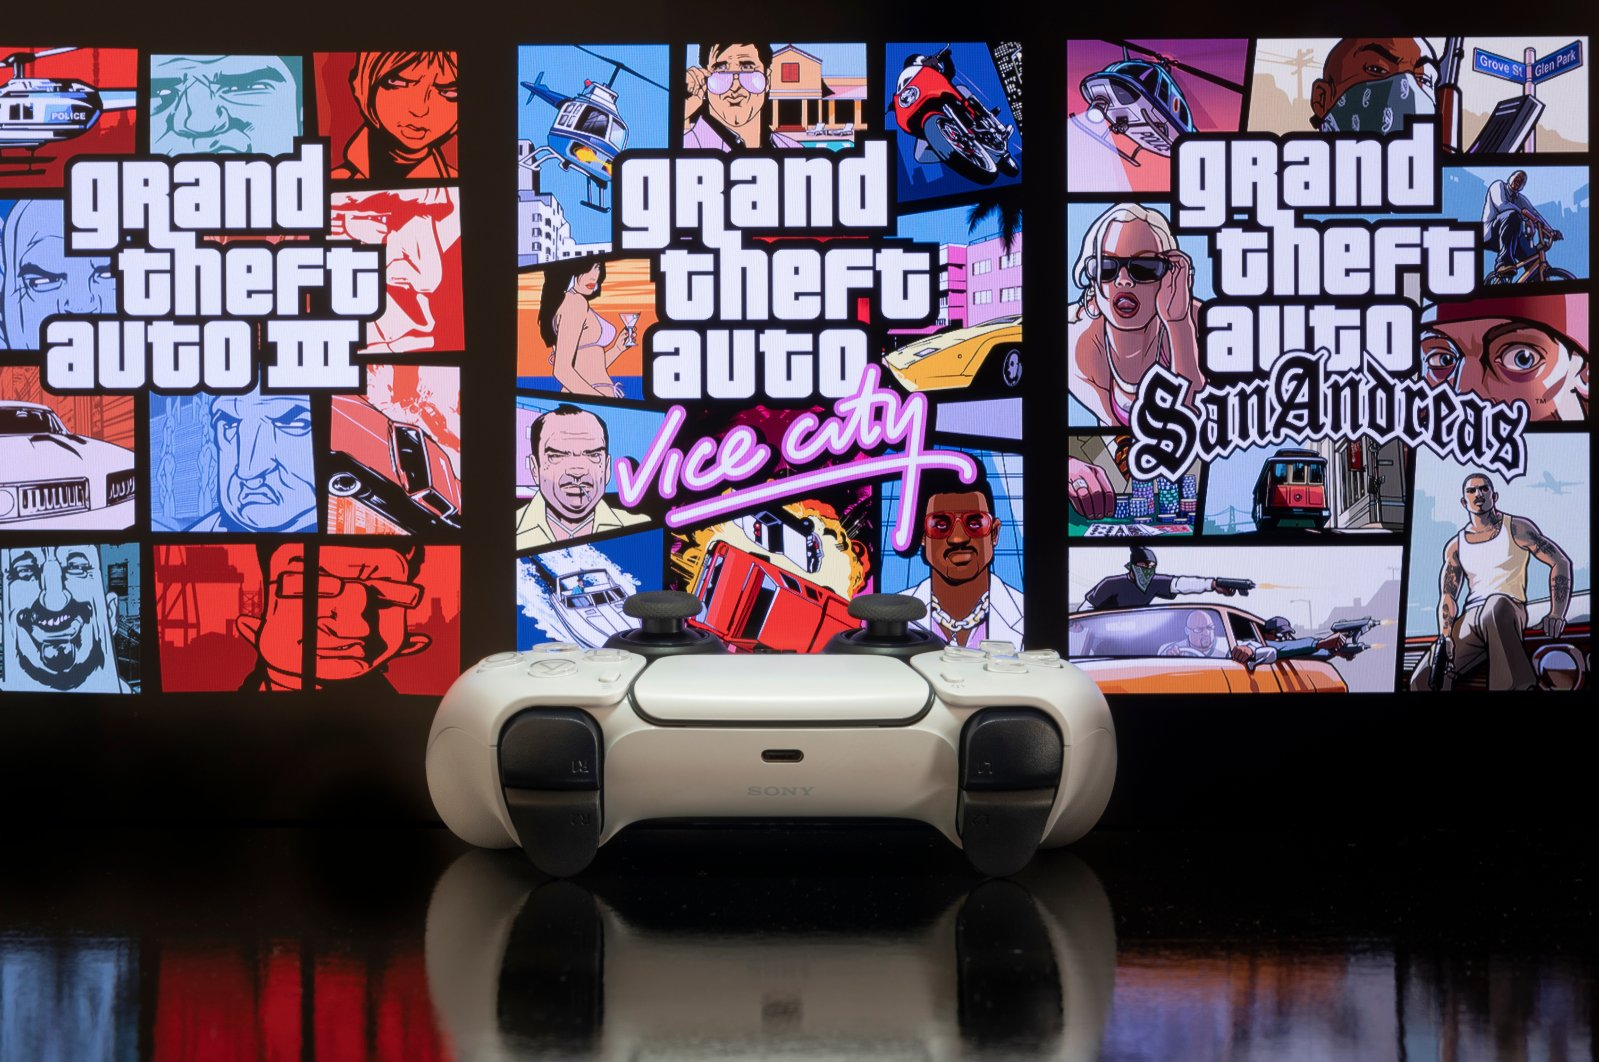 GTA: The Trilogy Definitive Edition - III, Vice City and San Andreas - on a TV screen with Playstation 5 game controller. (Shutterstock Photo)